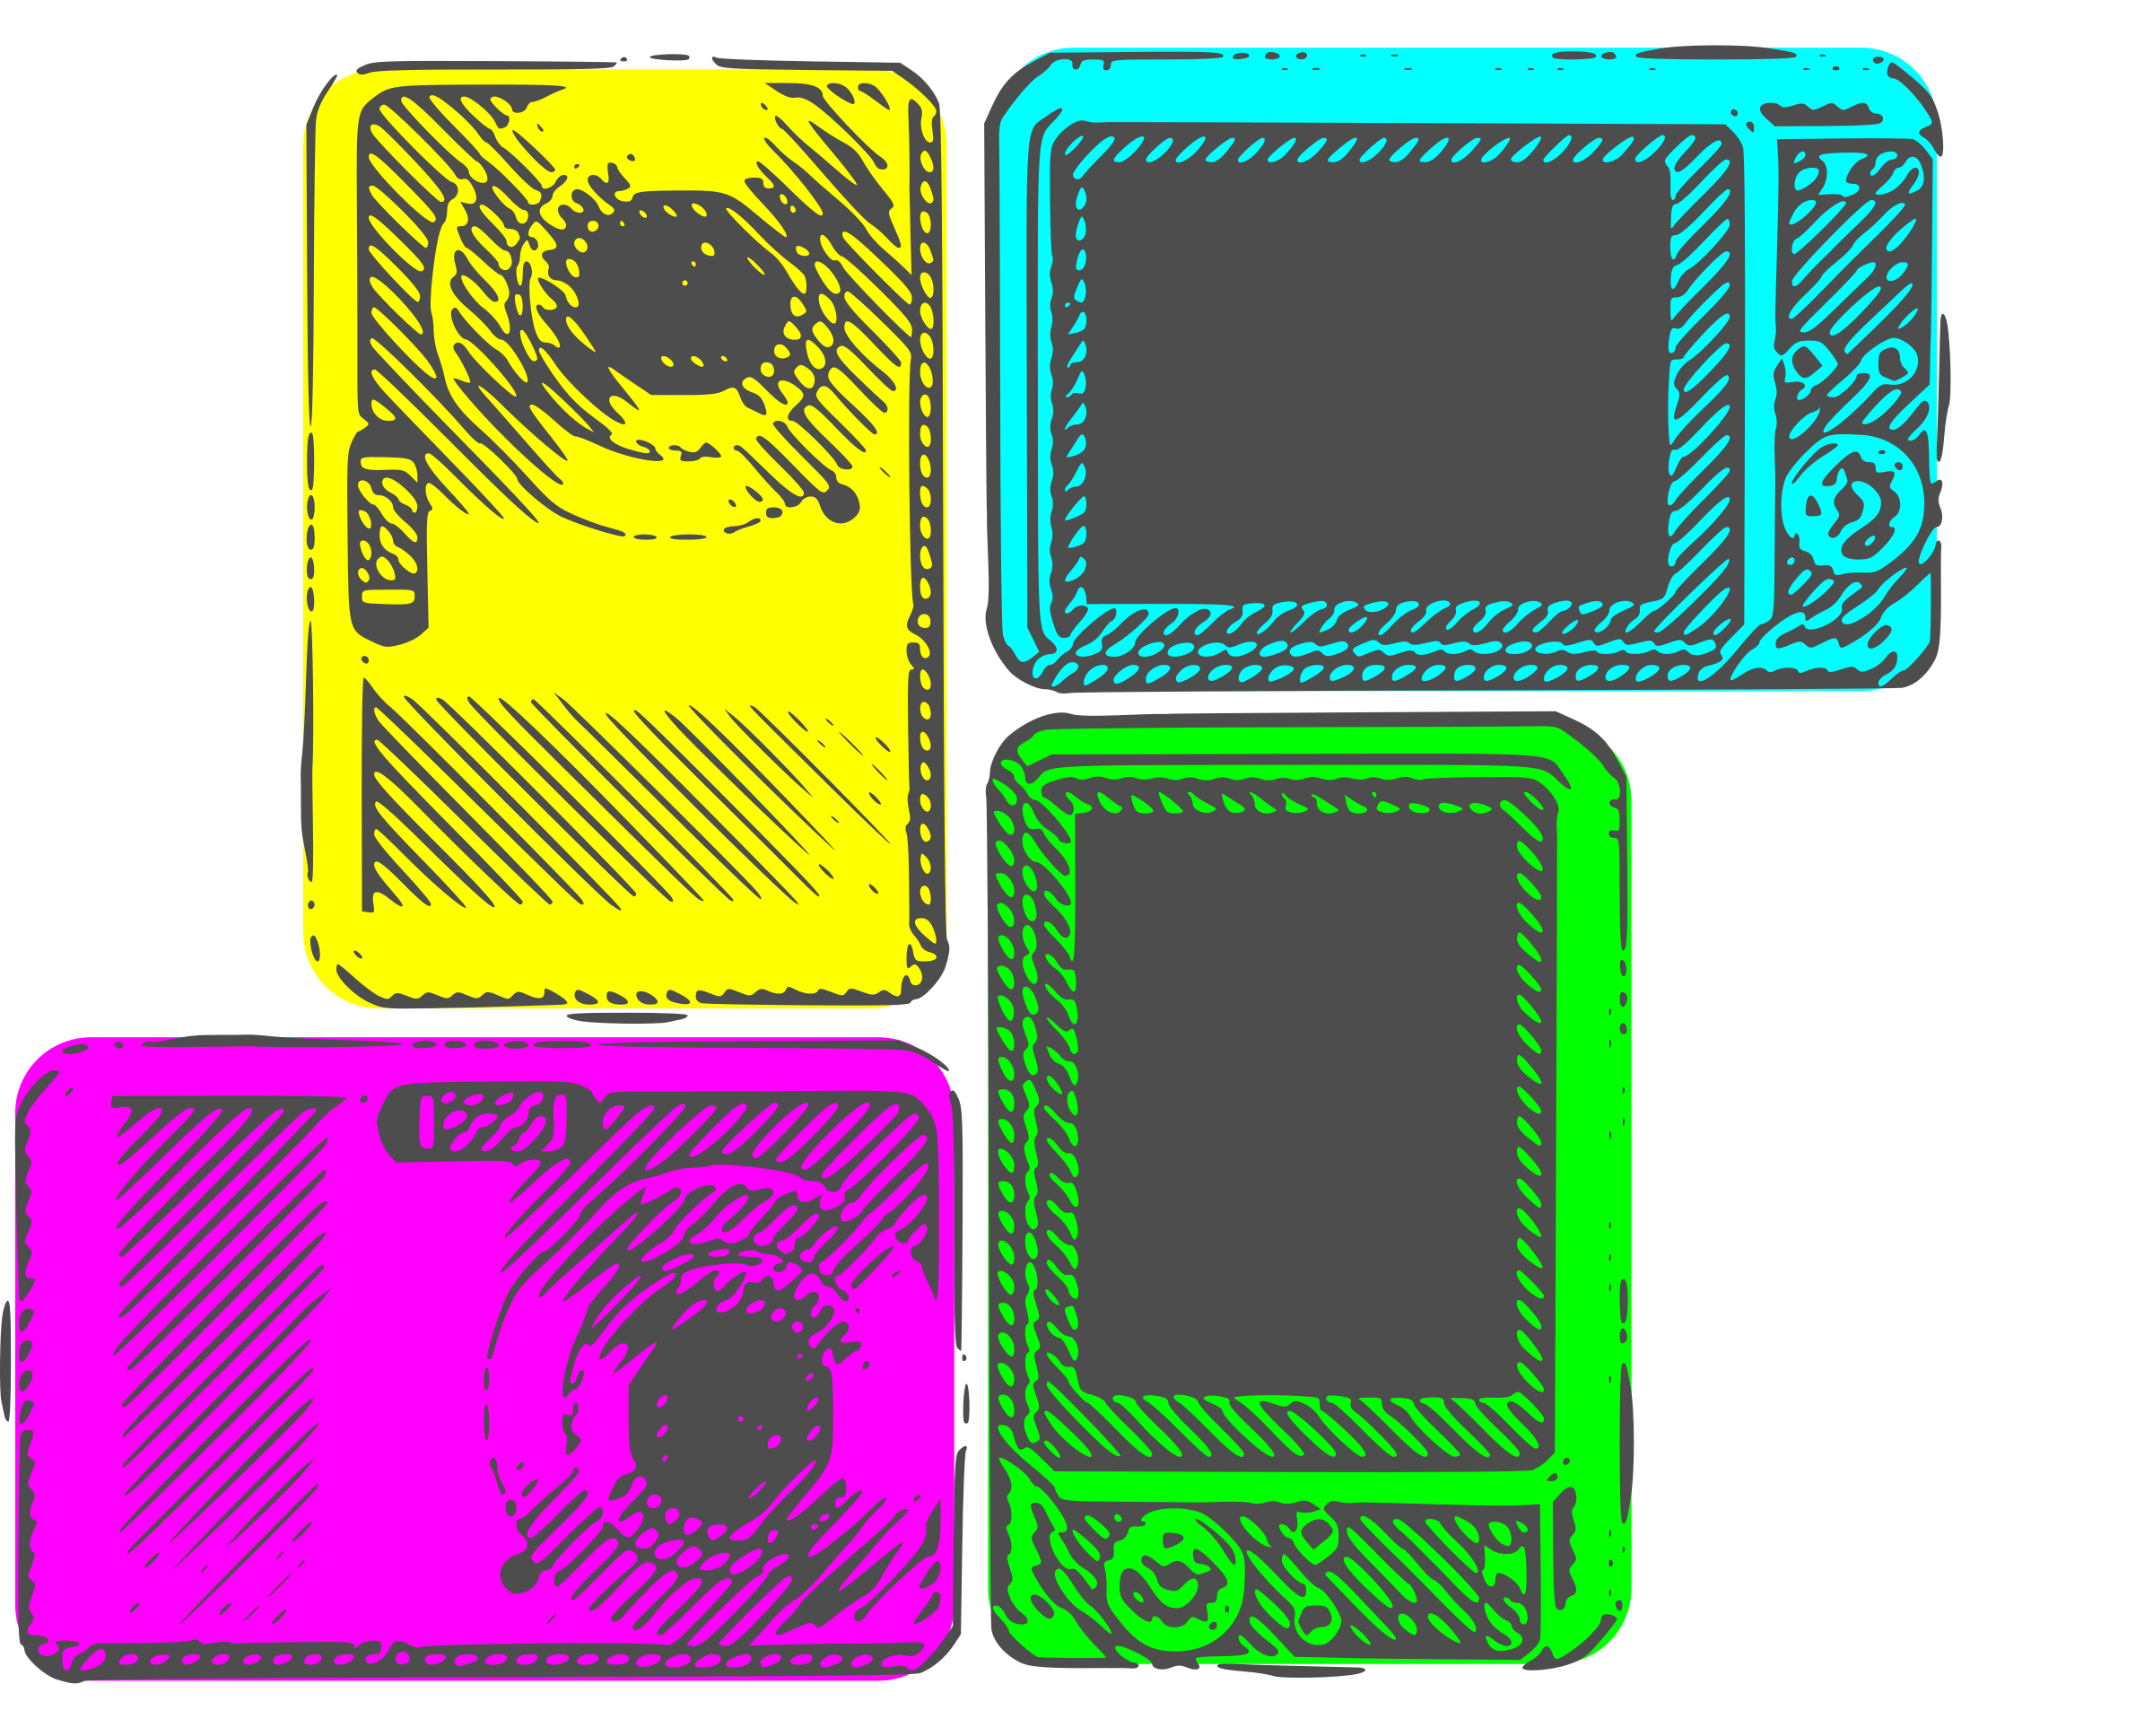 compact digital cameras by StymShinji